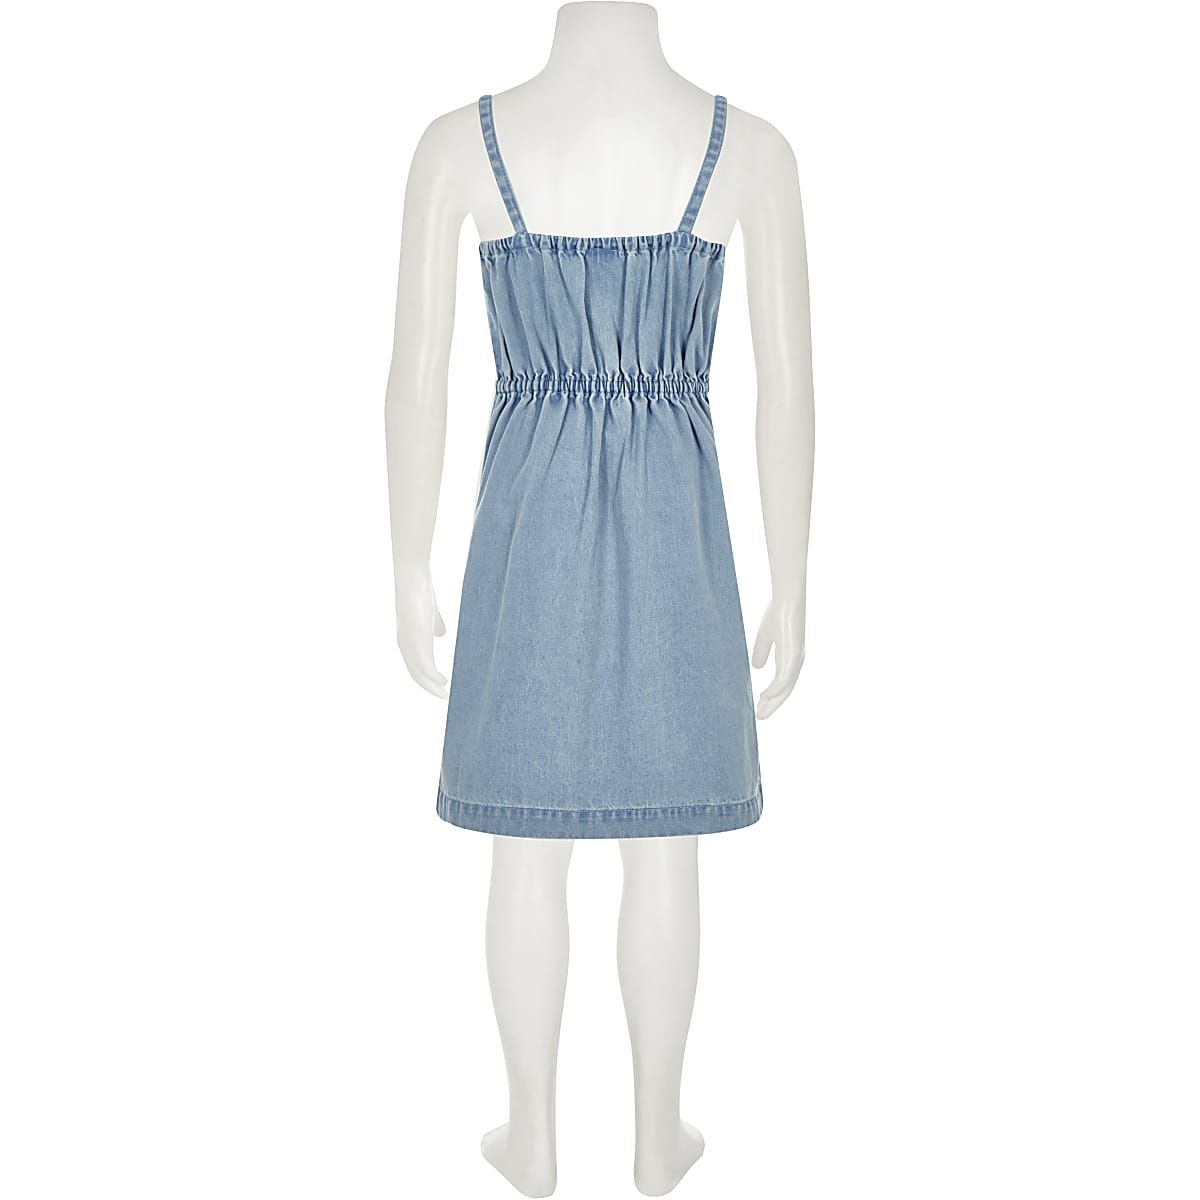 6e89a58b31 Girls blue denim cami dress - Day Dresses - Dresses - girls